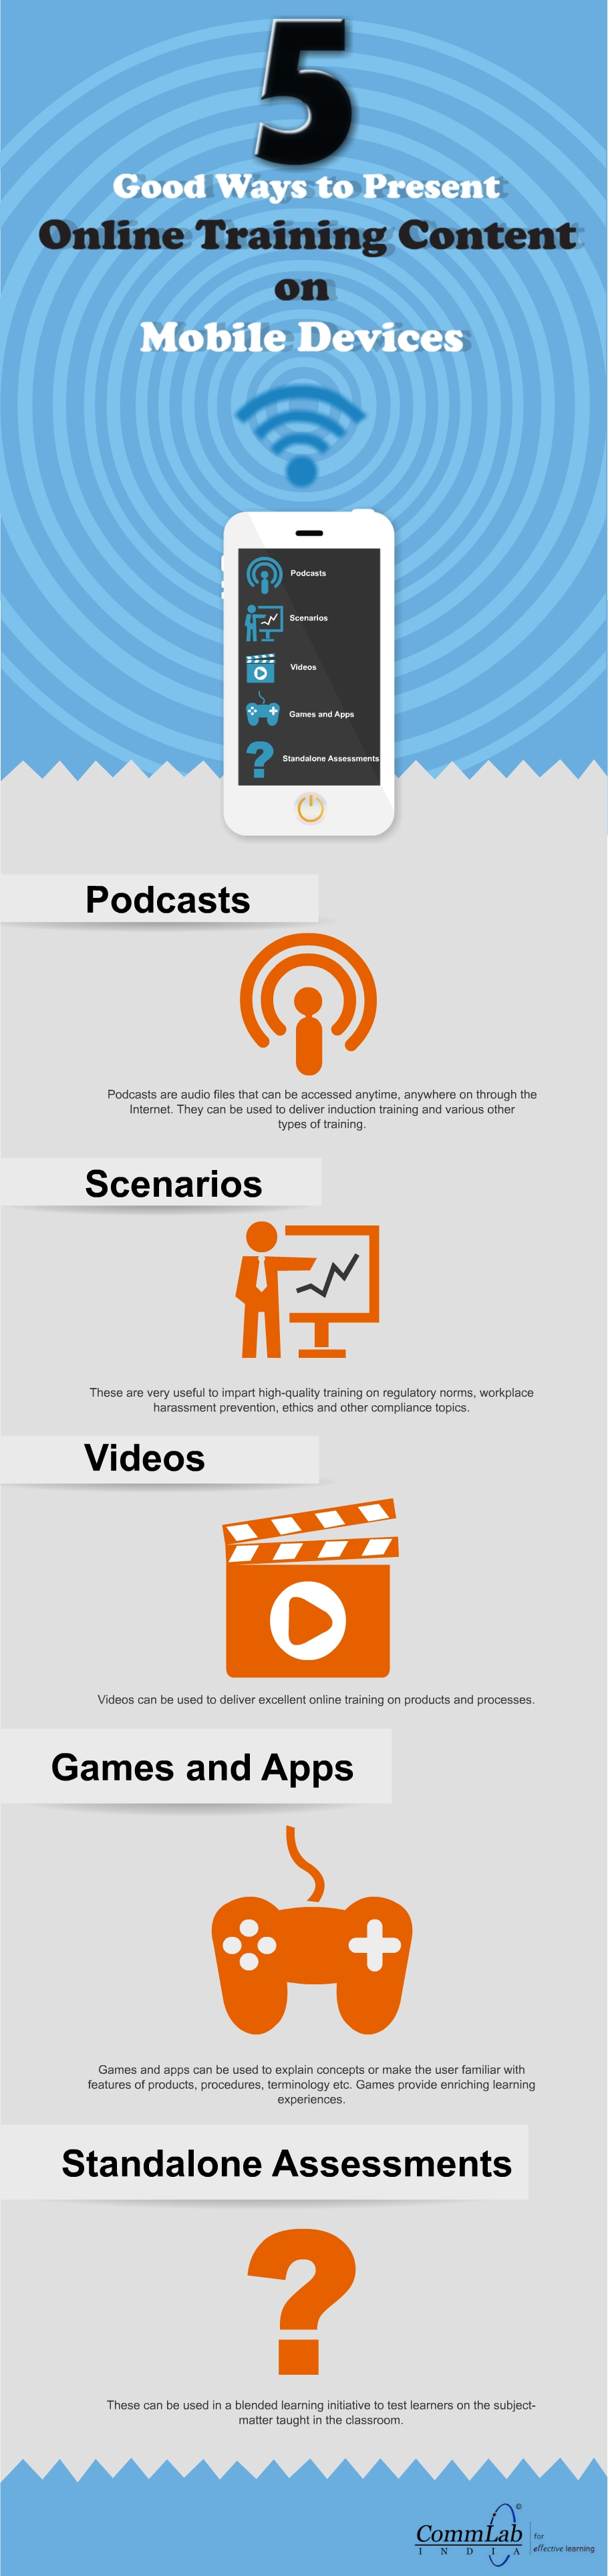 5 Good Ways to Present Online Content on Mobile Device - An Infographic